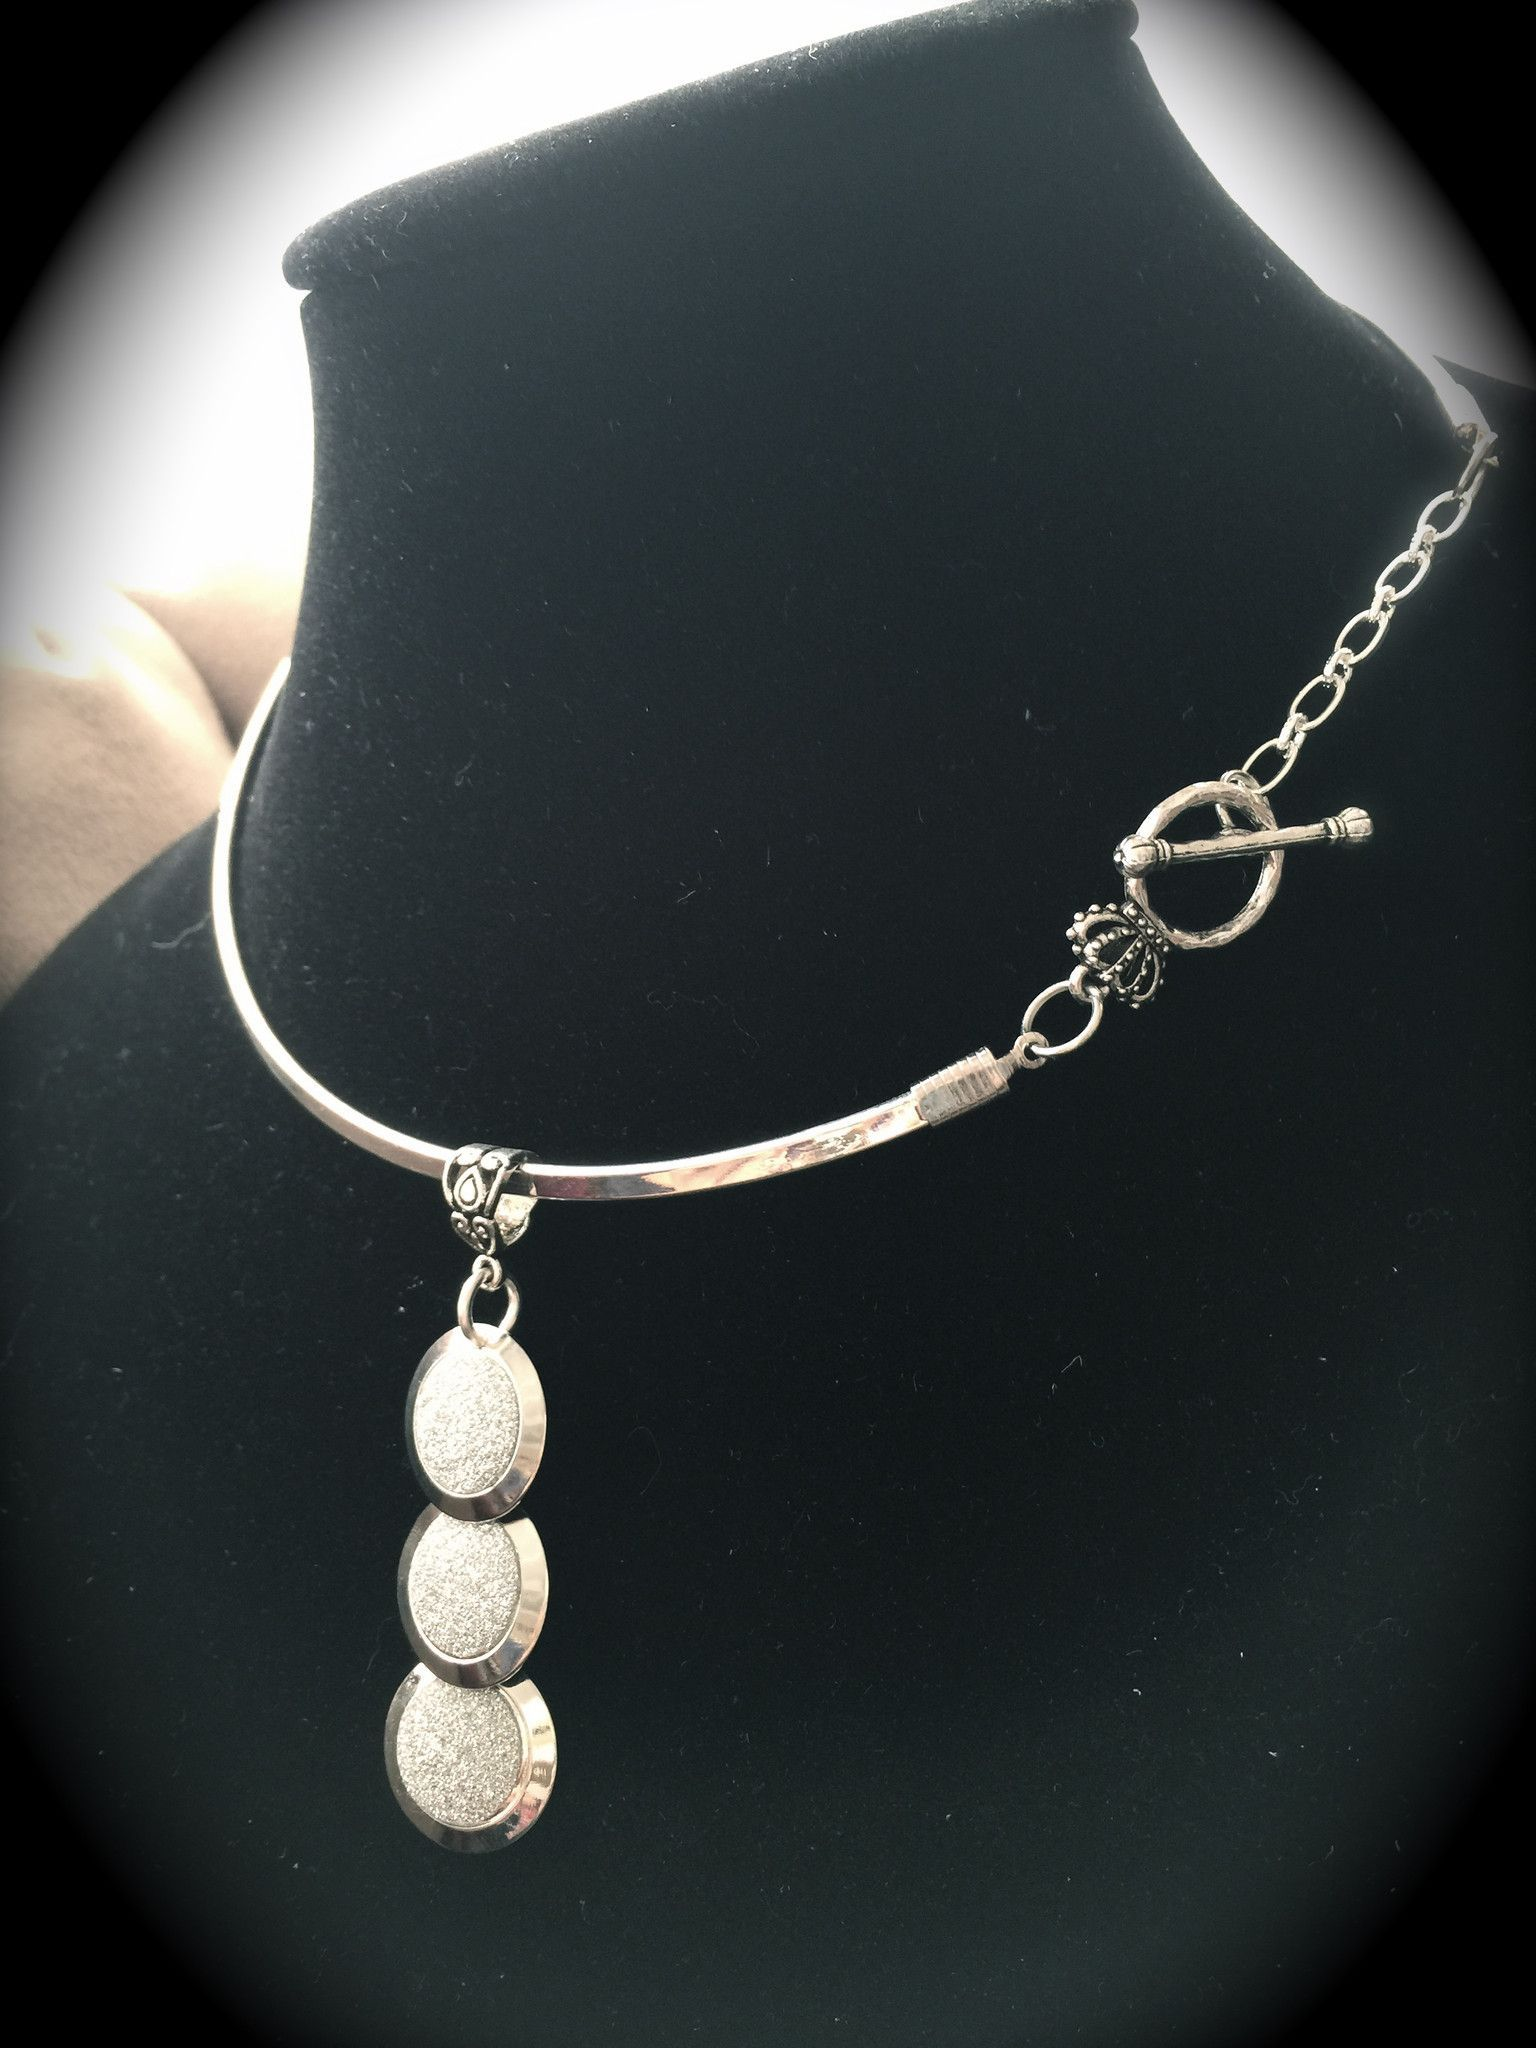 Silver Plated Glam Collar Necklace